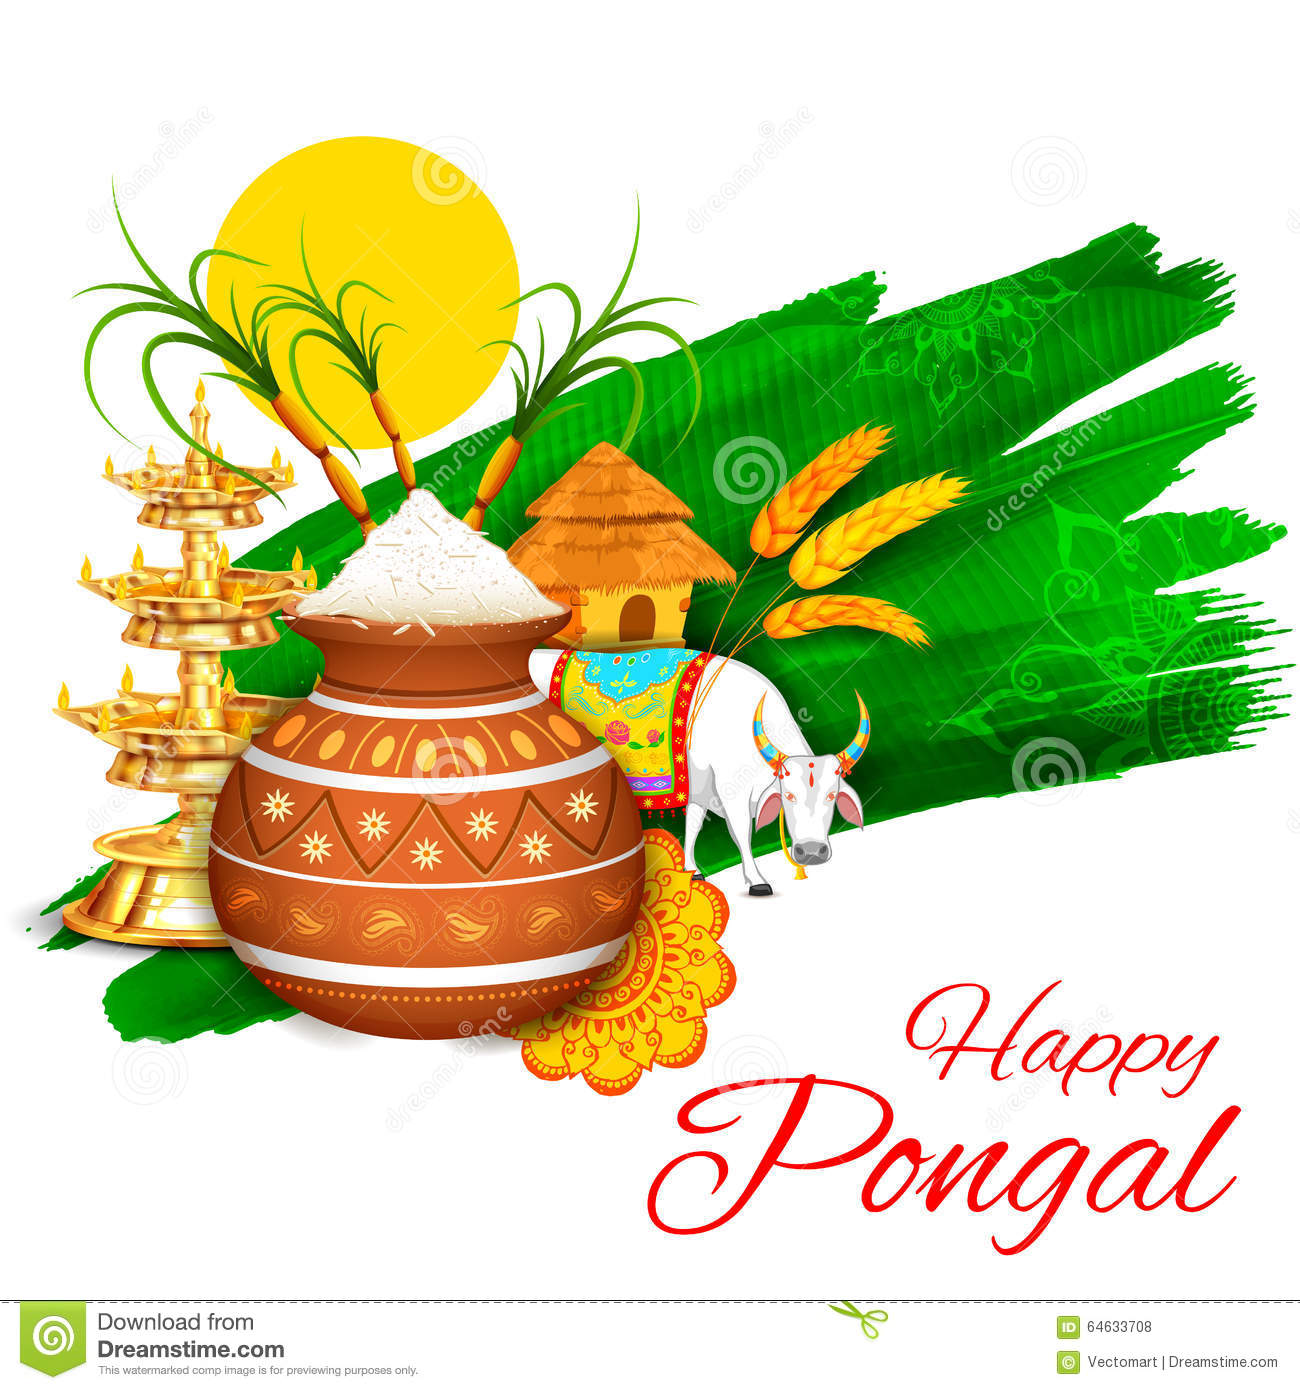 Happy pongal greeting background stock vector illustration of download happy pongal greeting background stock vector illustration of kalash hindu 64633708 m4hsunfo